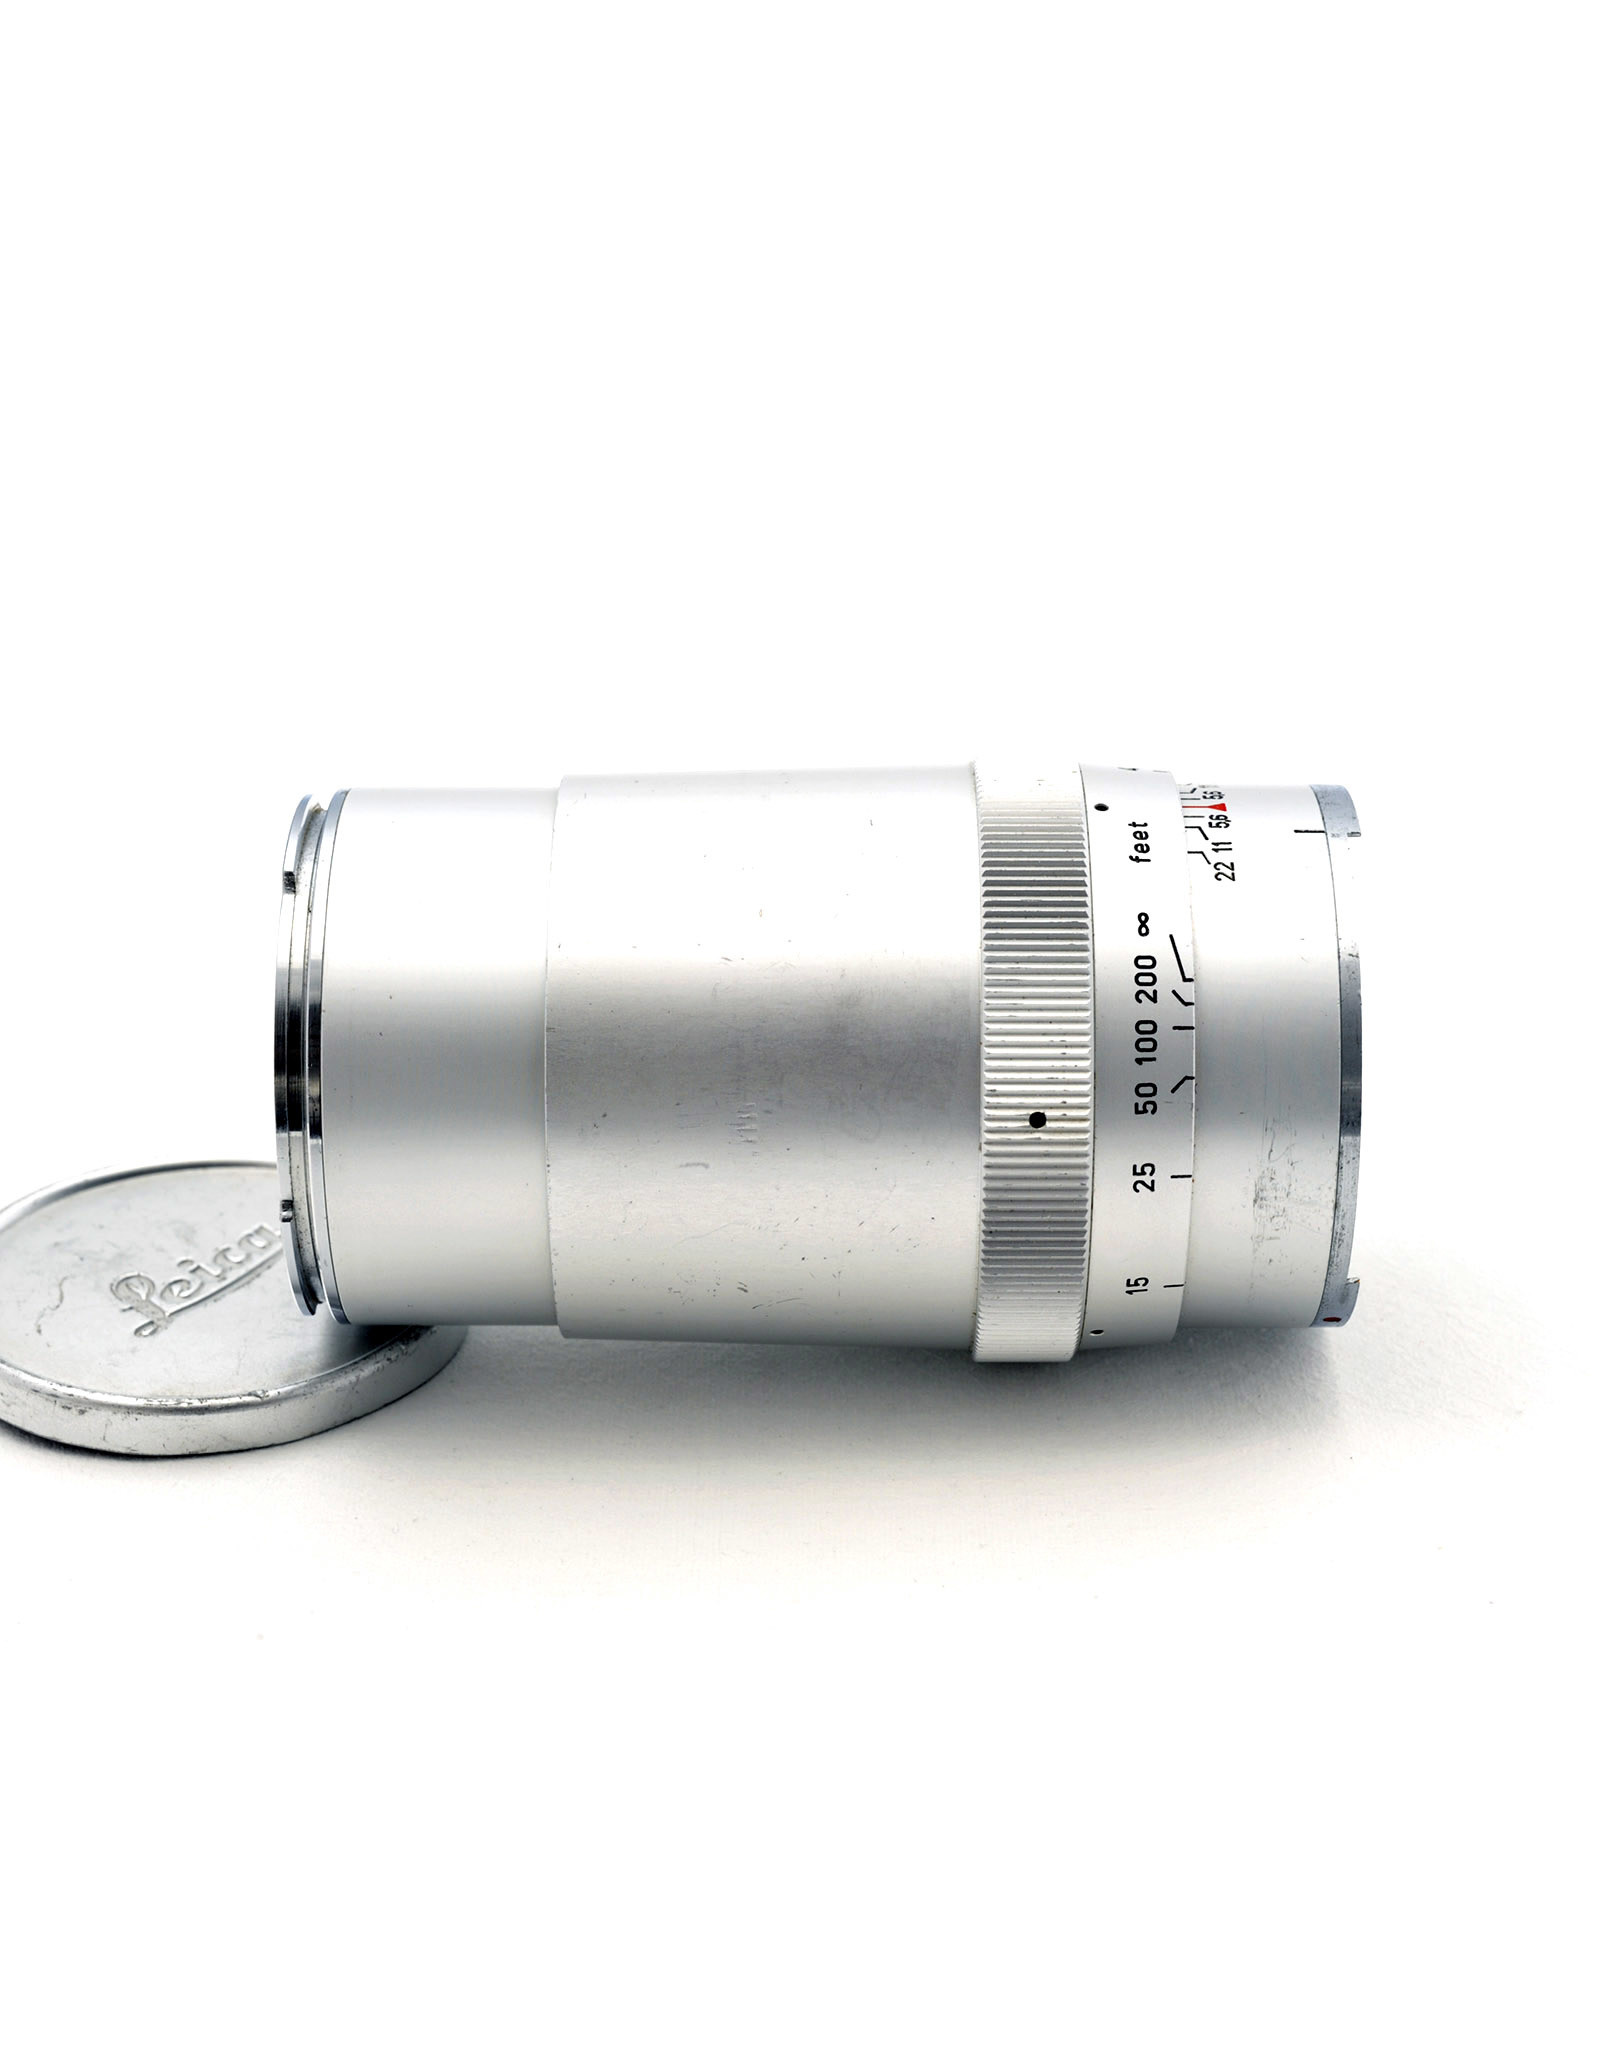 Carl Zeiss Carl Zeiss 135mm f4 Sonnar  (Contarex)   AP2122306